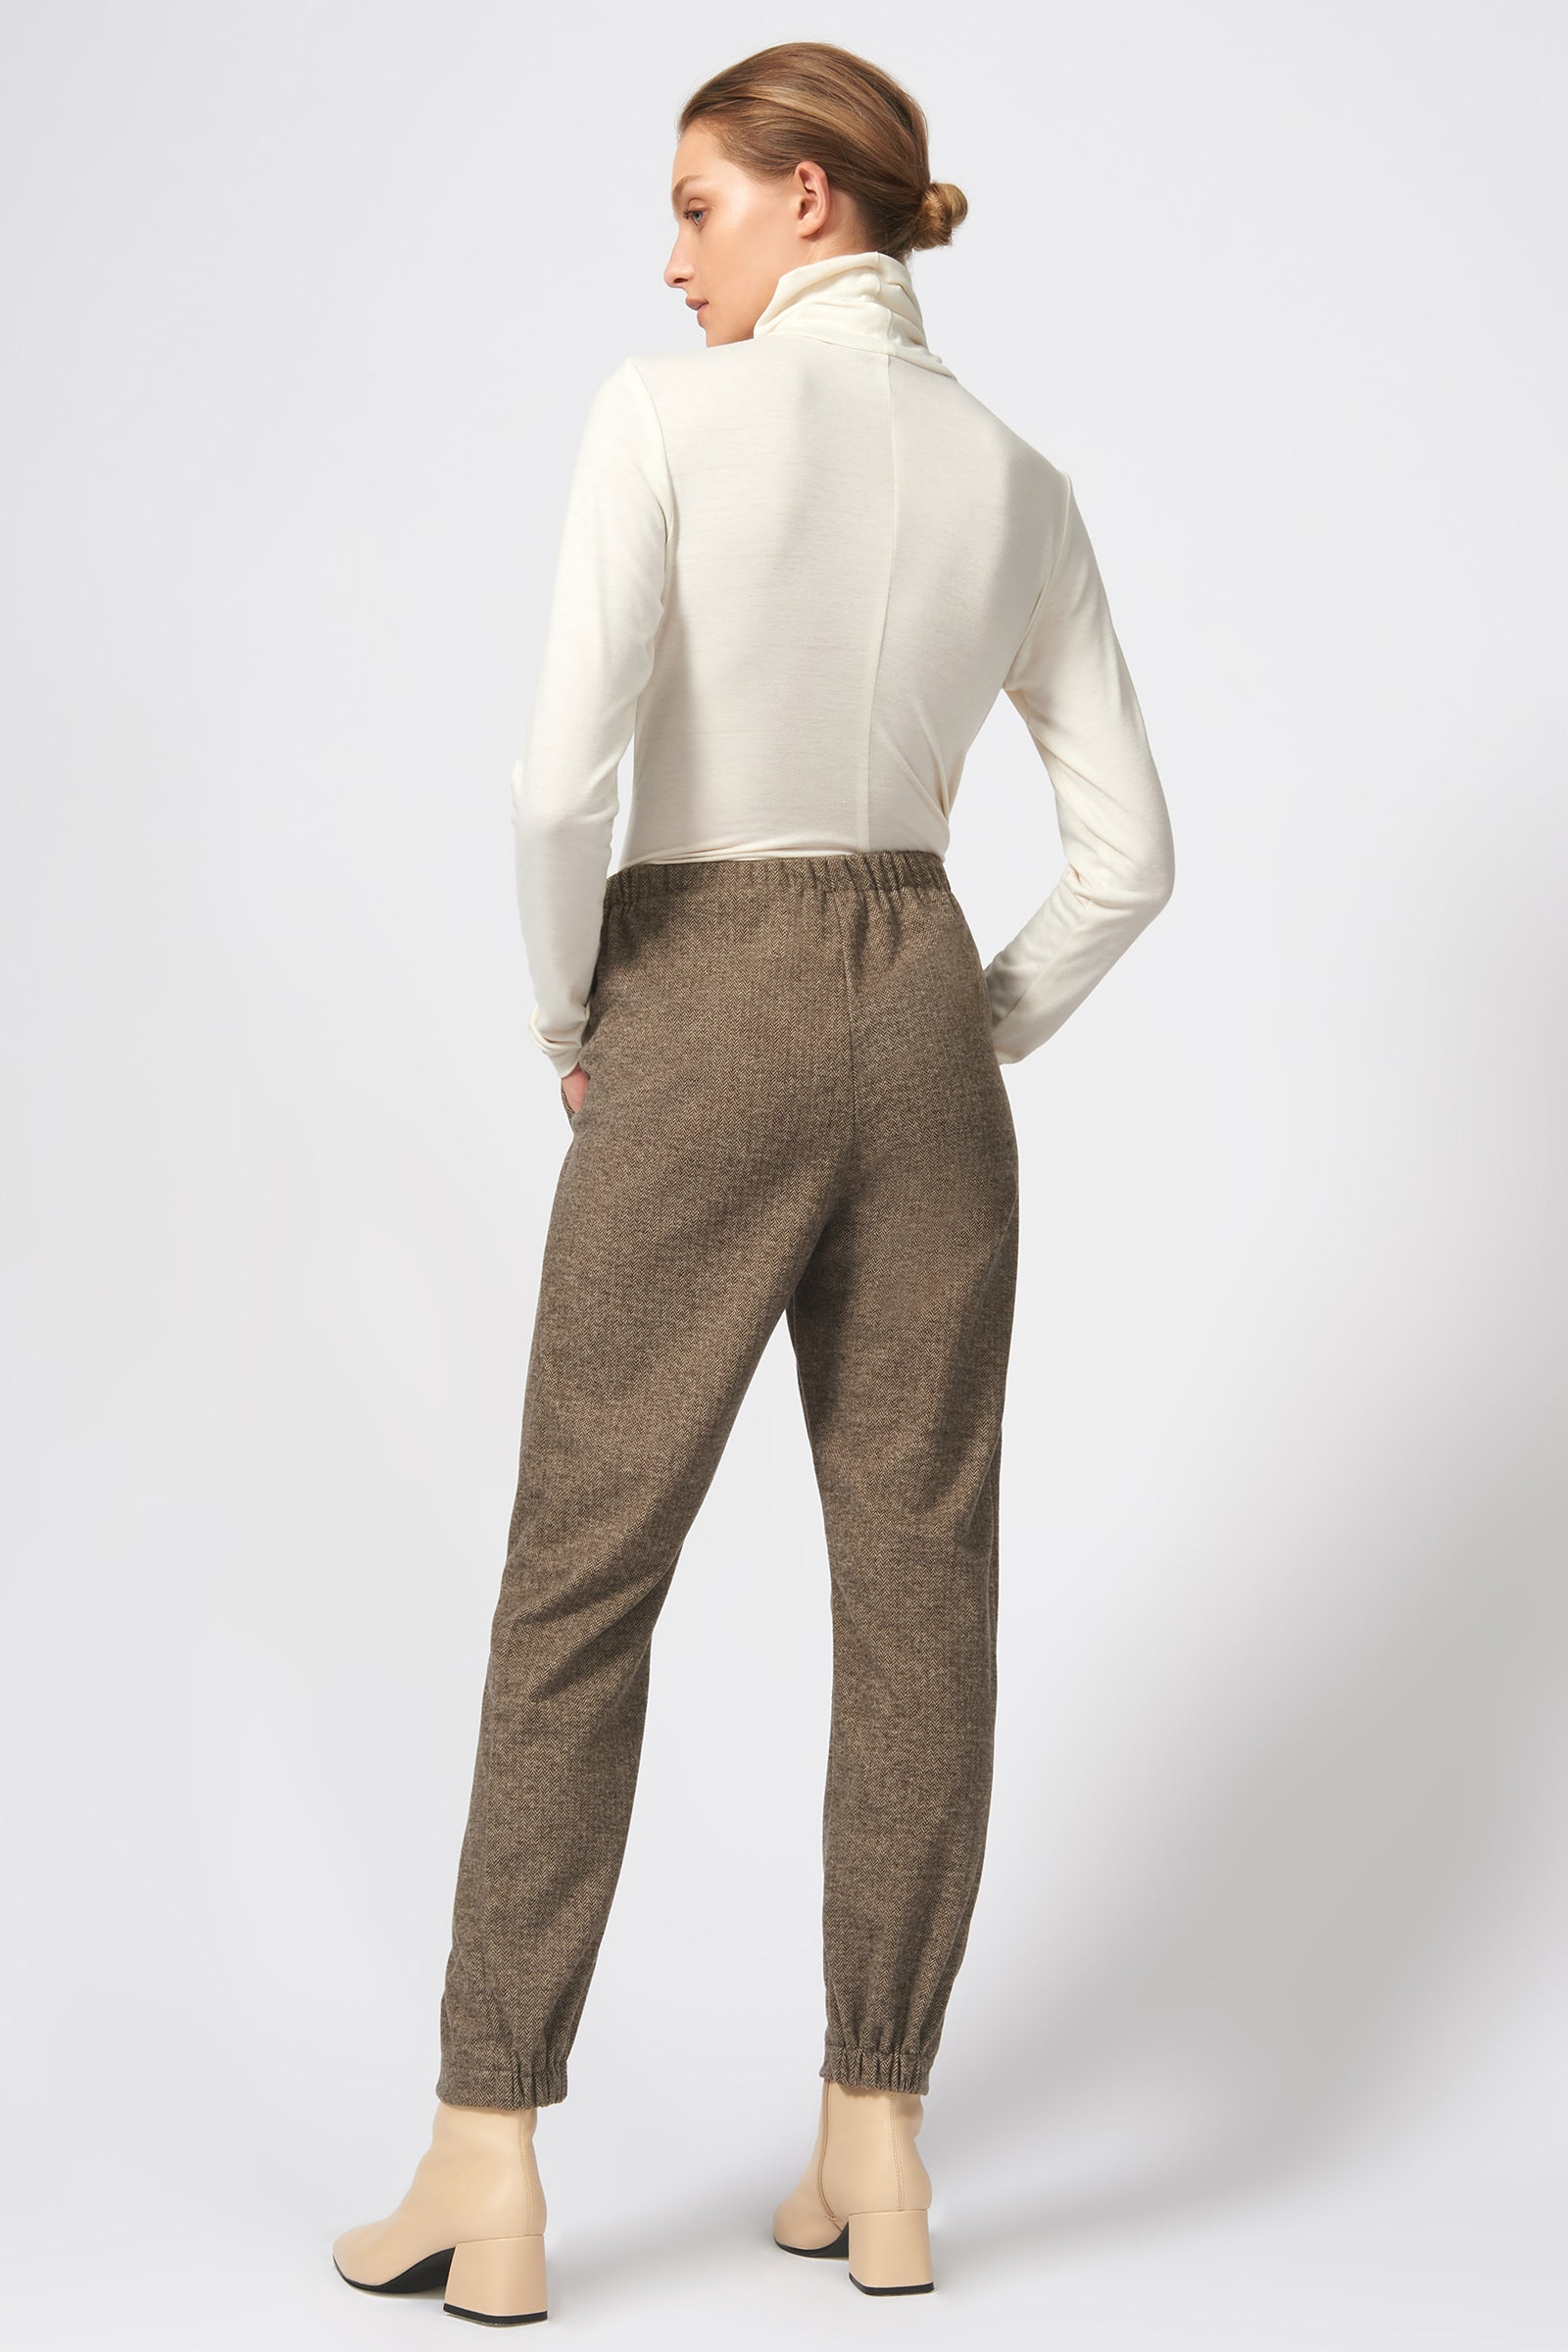 Kal Rieman Angle Seam Jogger in Taupe Herringbone on Model Full Back View